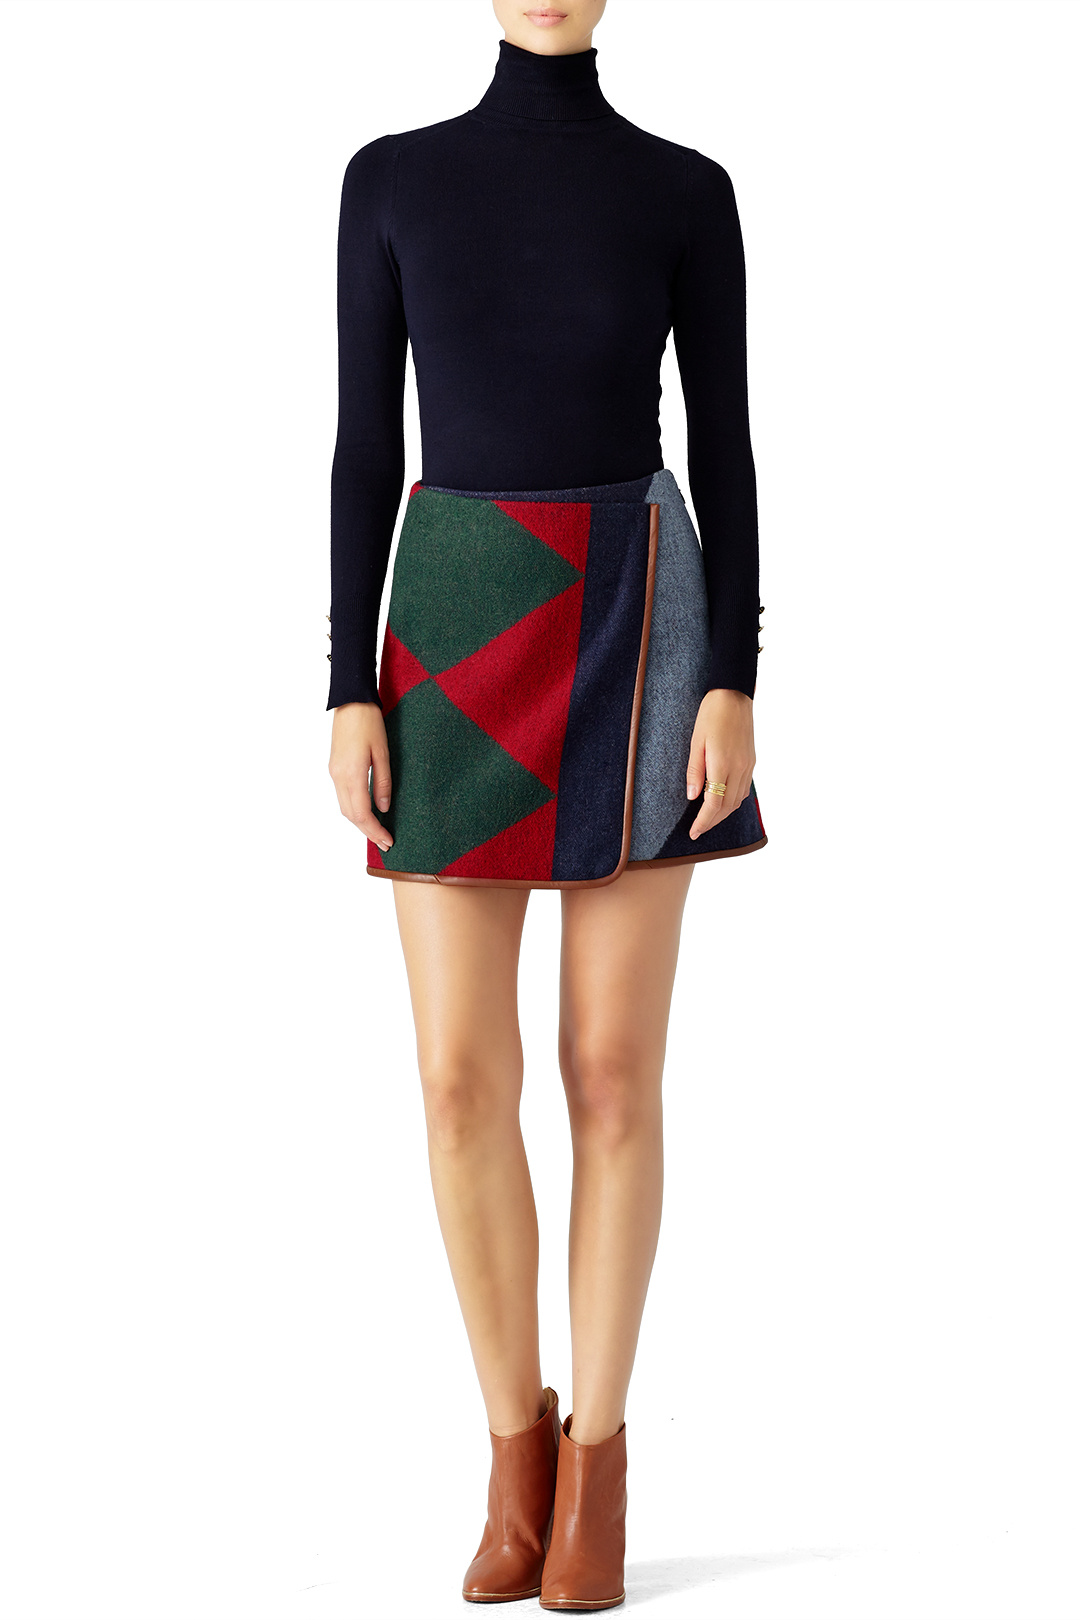 Tory Burch Cheval Patchwork Skirt - Pair with tights and a turtleneck and you're good to go girl!